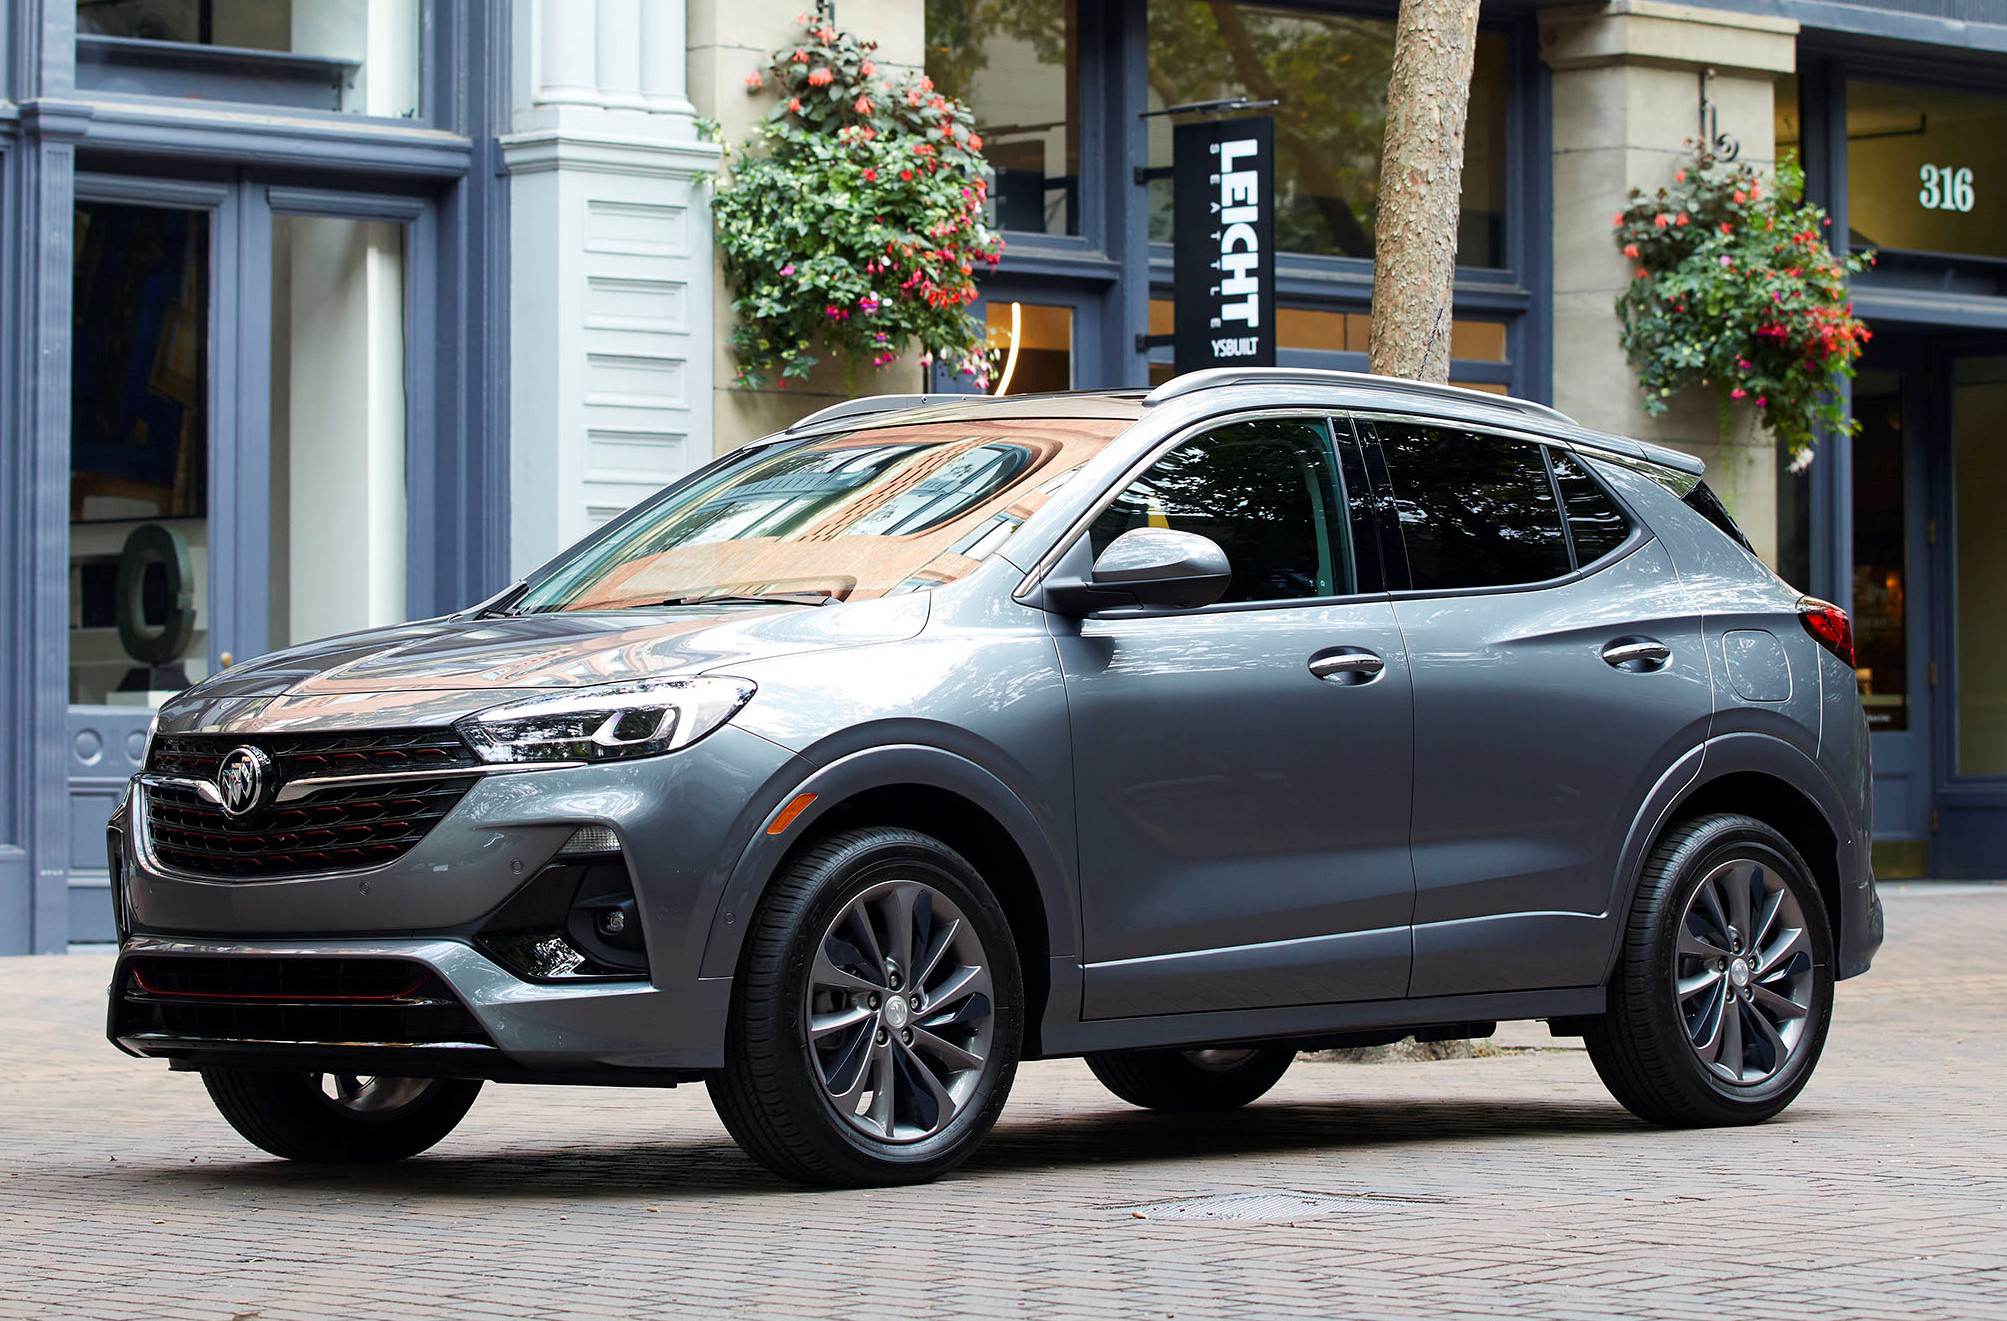 Buick Encore Gx Discount 0 Percent Apr, Cash March 2020 | Gm New 2022 Buick Encore Gx Lease Price, Mpg, Msrp